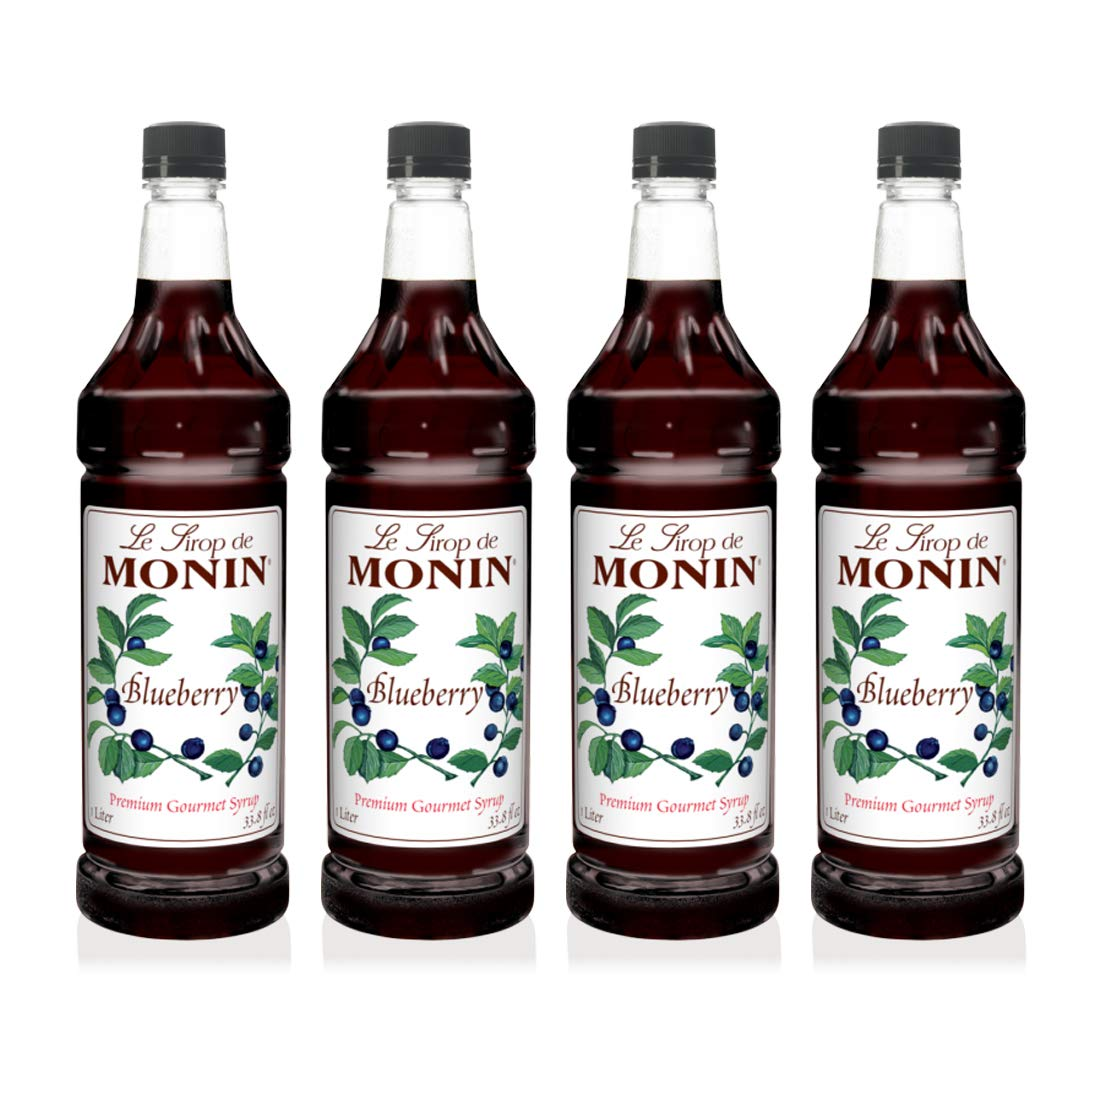 Monin - Blueberry Syrup, Mildly Sweet & Tart Blueberry Flavor, Great for Teas, Lemonades, Smoothies, & Cocktails, Gluten-Free, Non-GMO (1 Liter, 4-Pack)